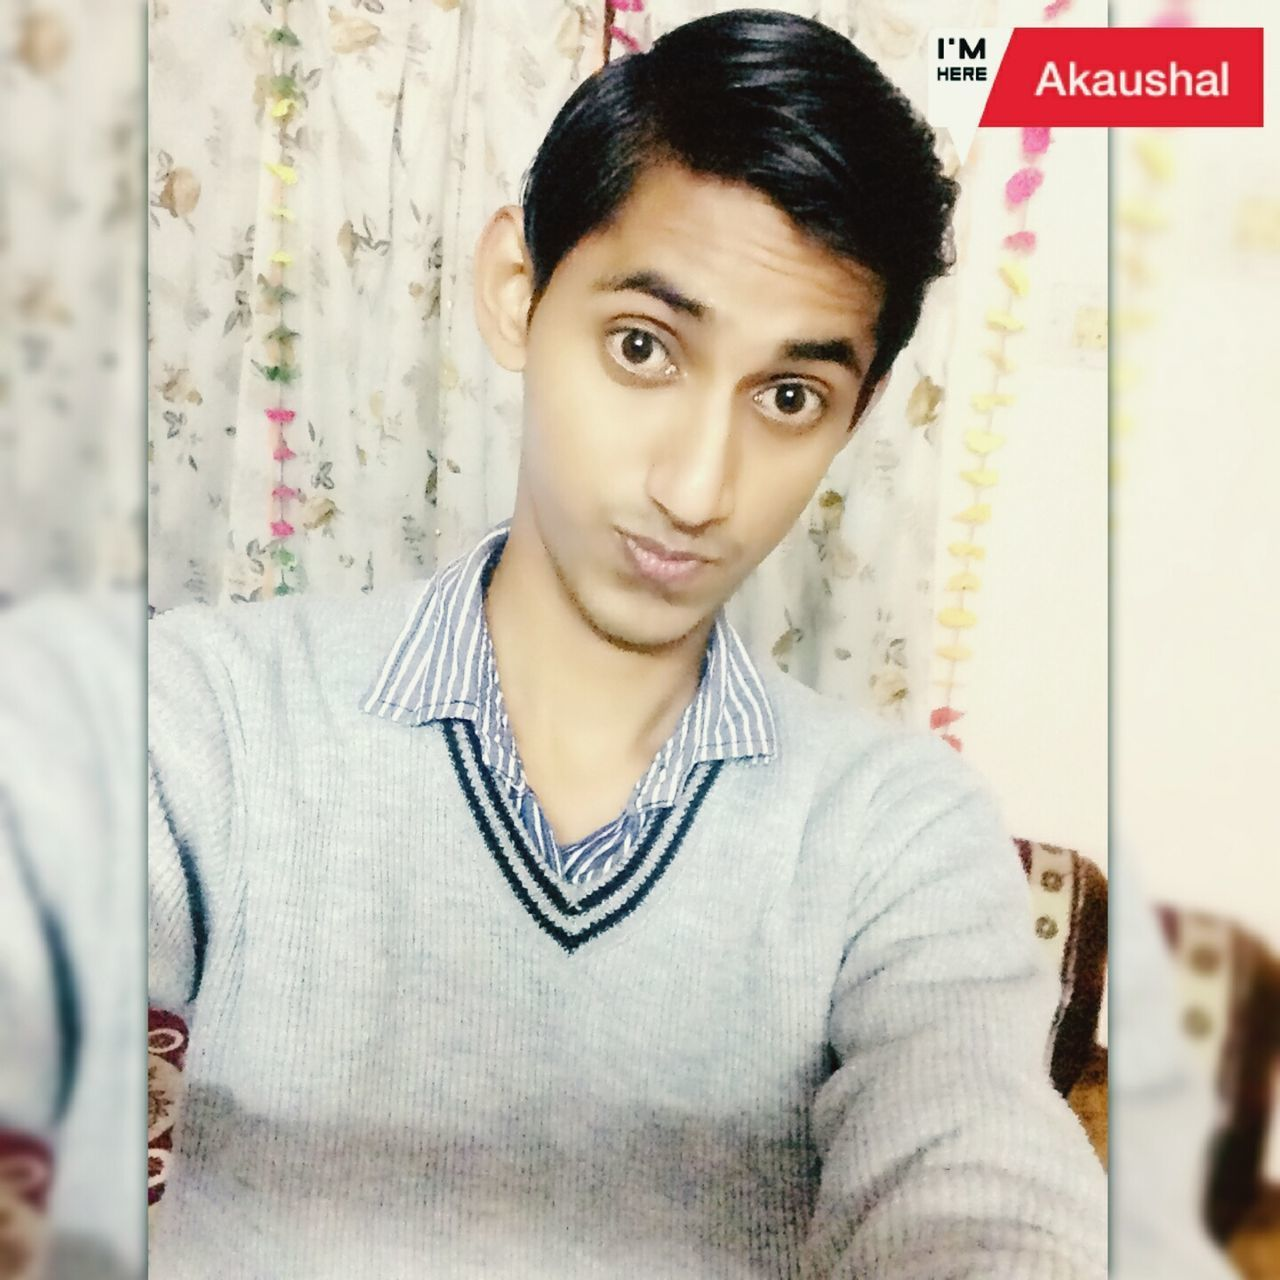 EyeEm Selects Looking At Camera Headshot Portrait One Person Casual Clothing Communication Looking At Camera Officialakaushal Front View India EyeEm Best Shots Awesome EyeEmNewHere